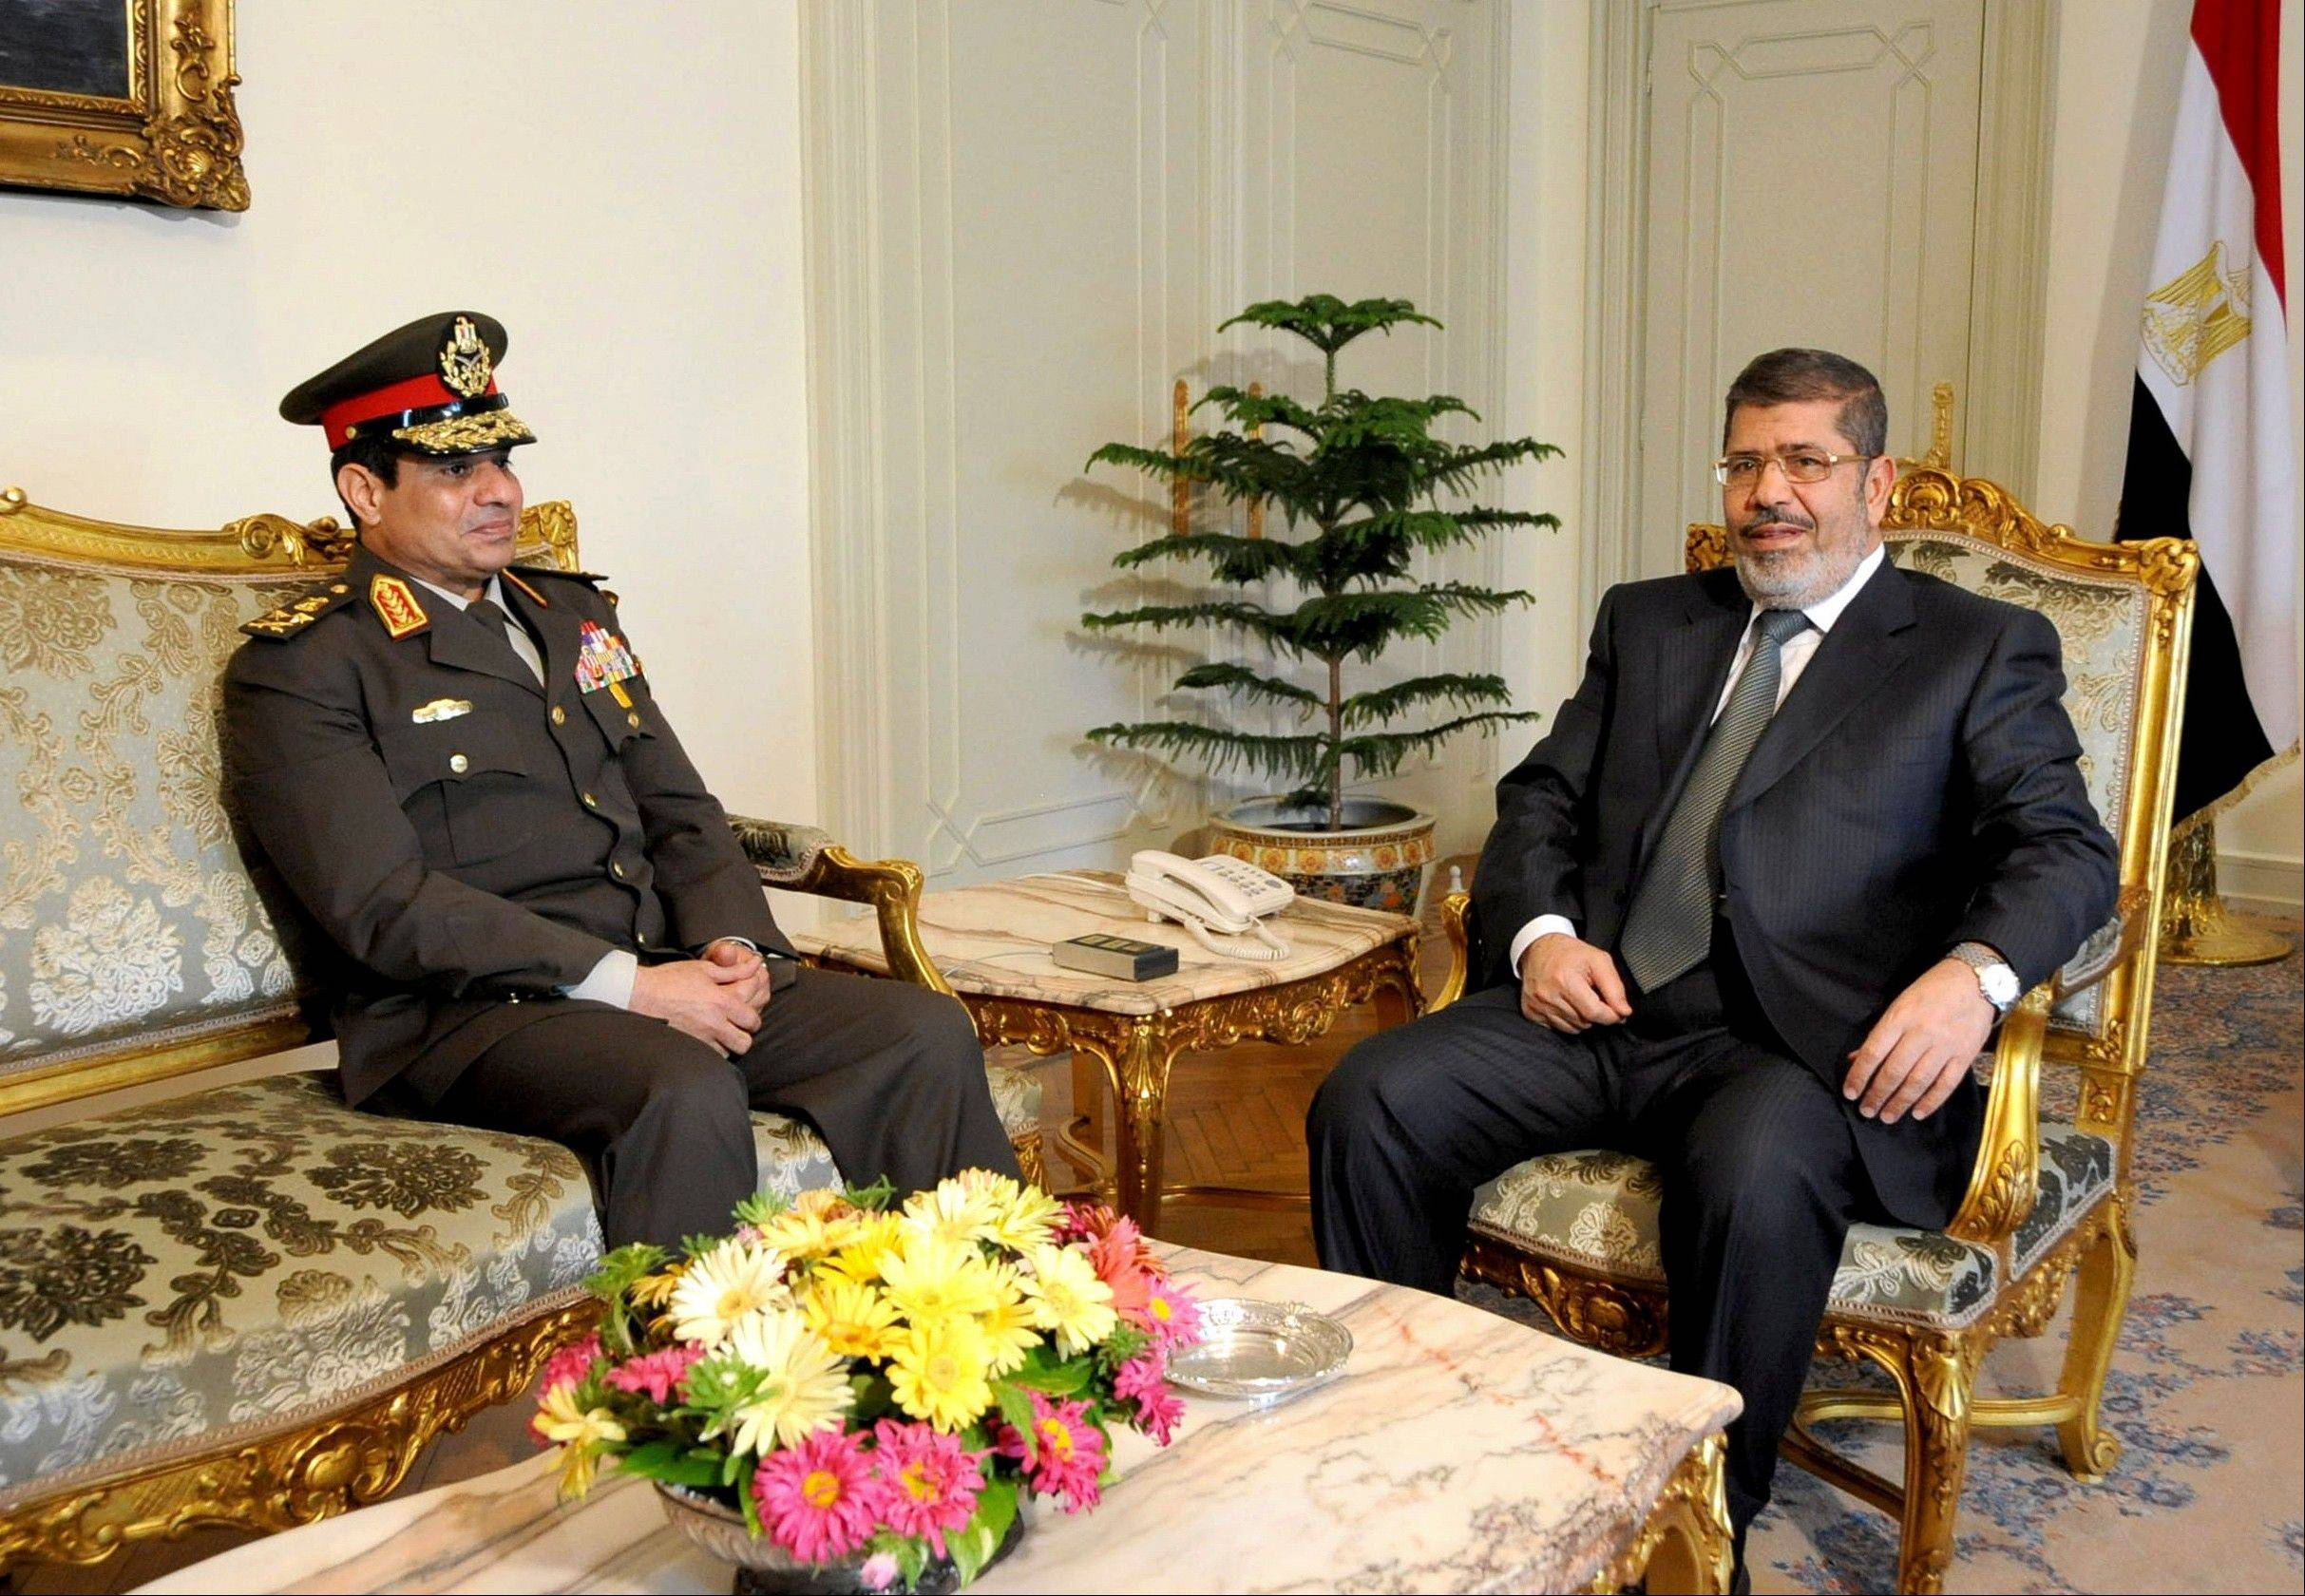 Associated Press/Feb, 21, 2013Egyptian Minister of Defense, Lt. Gen. Abdel-Fattah el-Sissi, left, meets with Egyptian President Mohammed Morsi at the presidential headquarters in Cairo, Egypt.